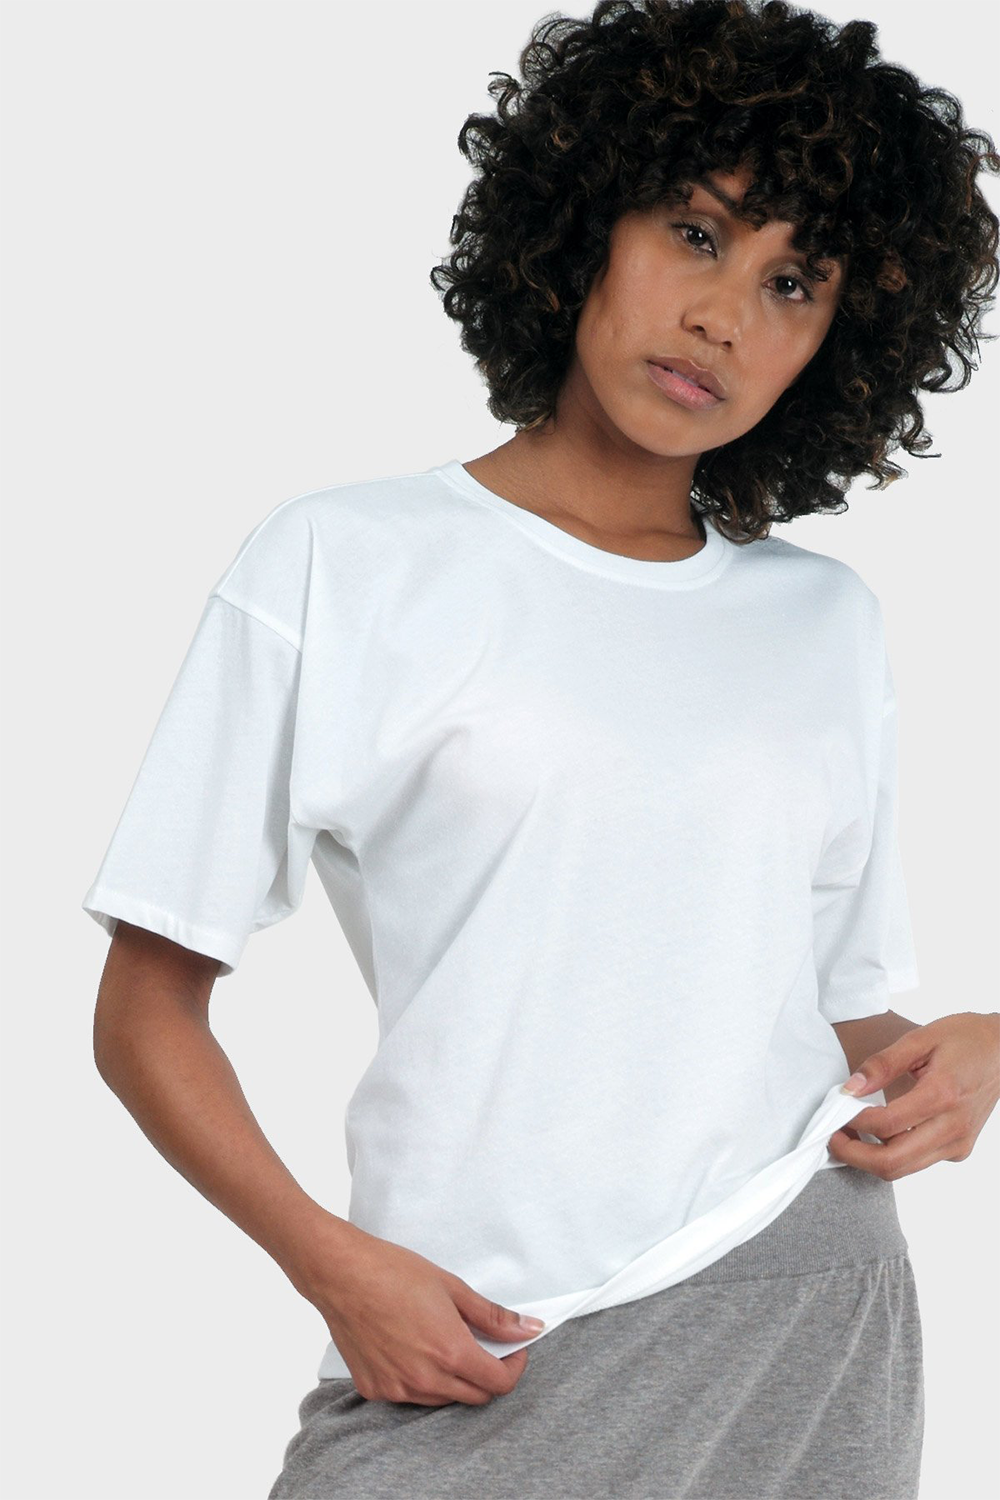 Circularity Tshirt in white